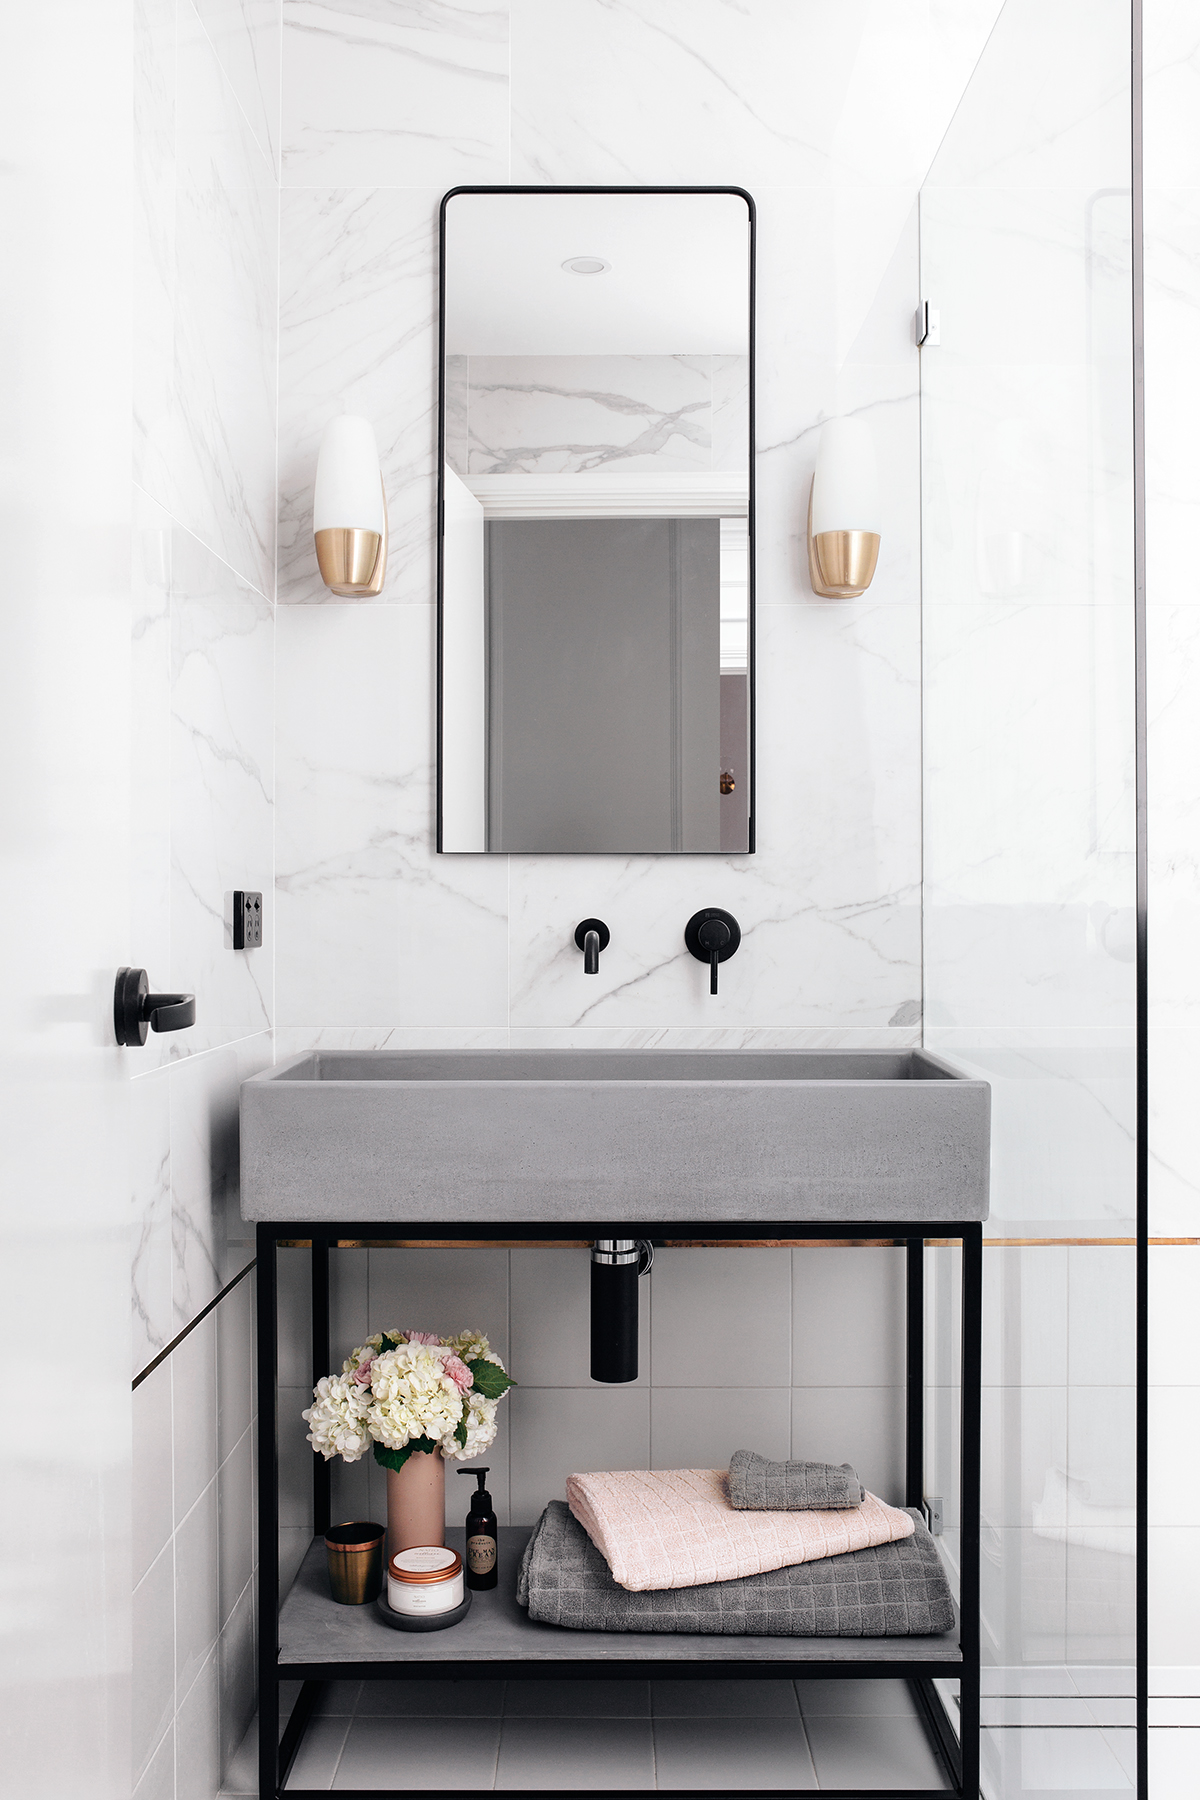 Nood Co.'s trough sink vanity set and 'Zia' mirror, along with the Phoenix matte black tapware, bring a contemporary edge to this elegant space. Wall sconces were a lucky scrapyard find, costing only $5 each.